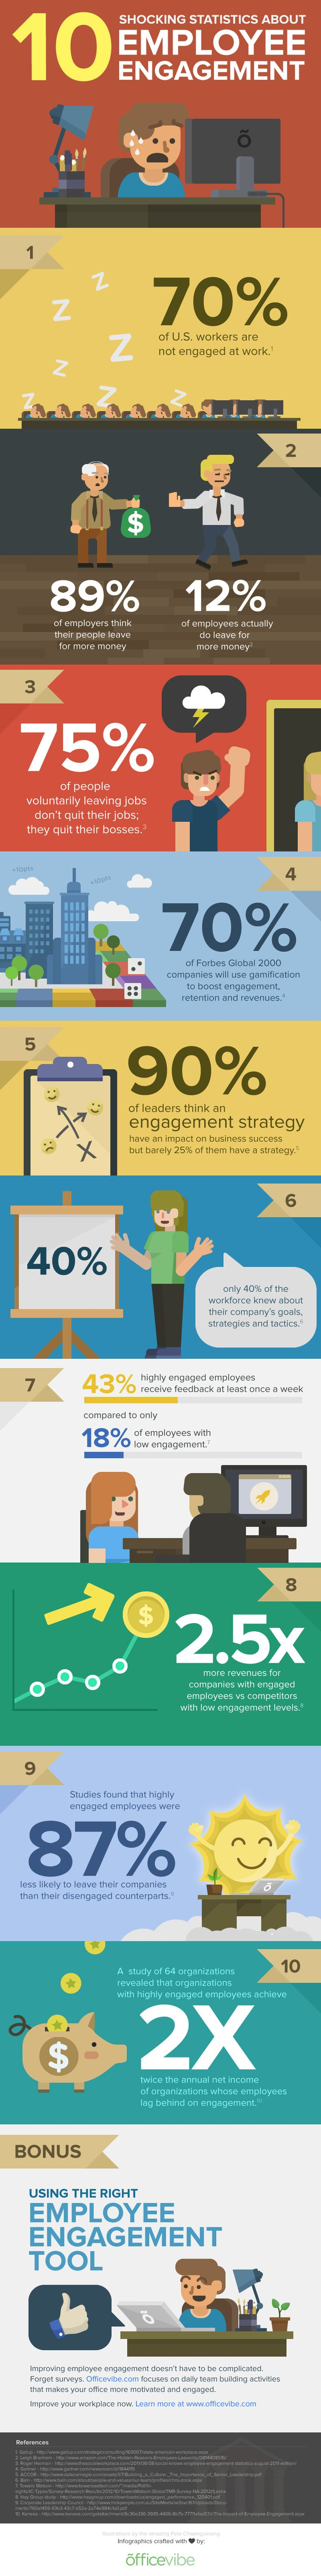 10 Shocking Statistics About Employee Engagement  #Infographic #EmployeeEngagement #Workforce